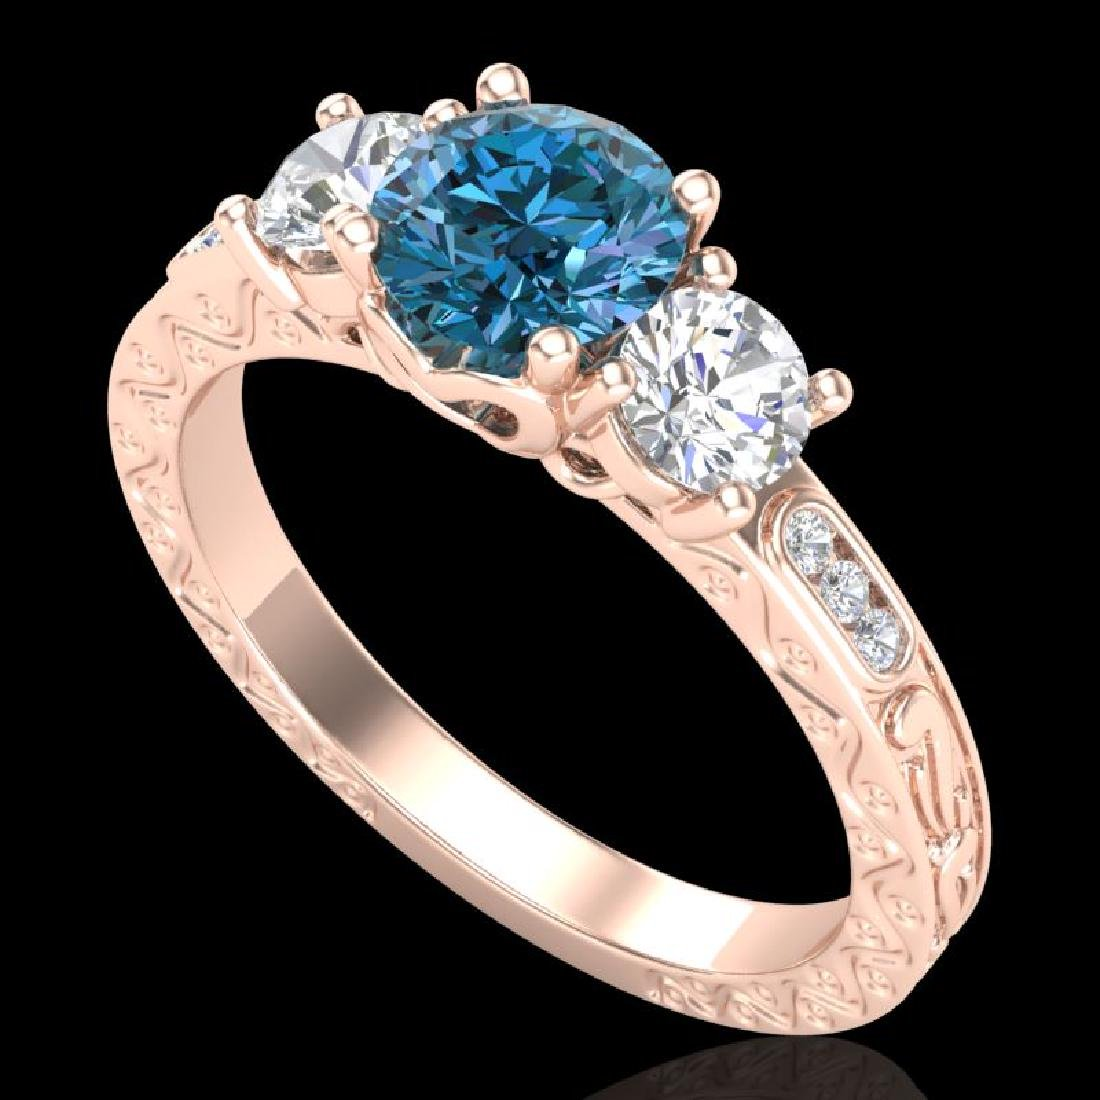 1.41 CTW Intense Blue Diamond Solitaire Art Deco 3